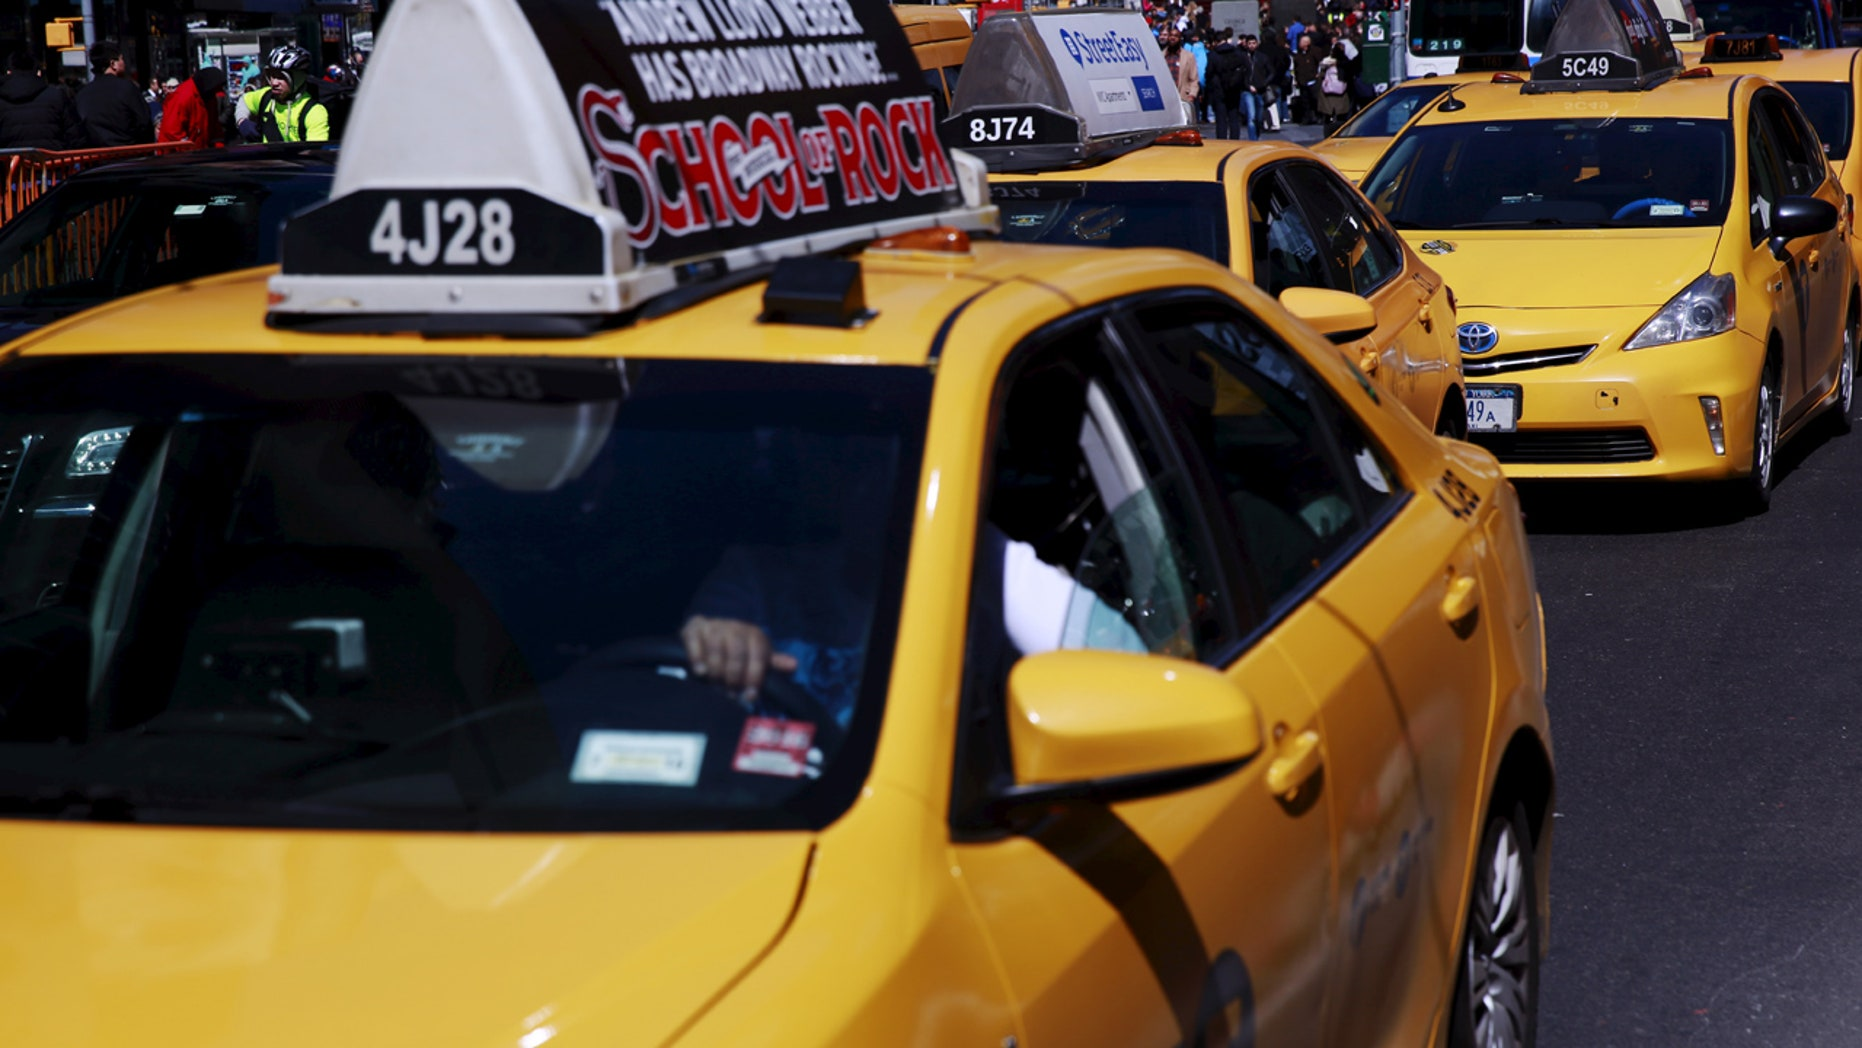 A New York cab driver had his thumb sliced by a machete wielded by a group of teens, police said.